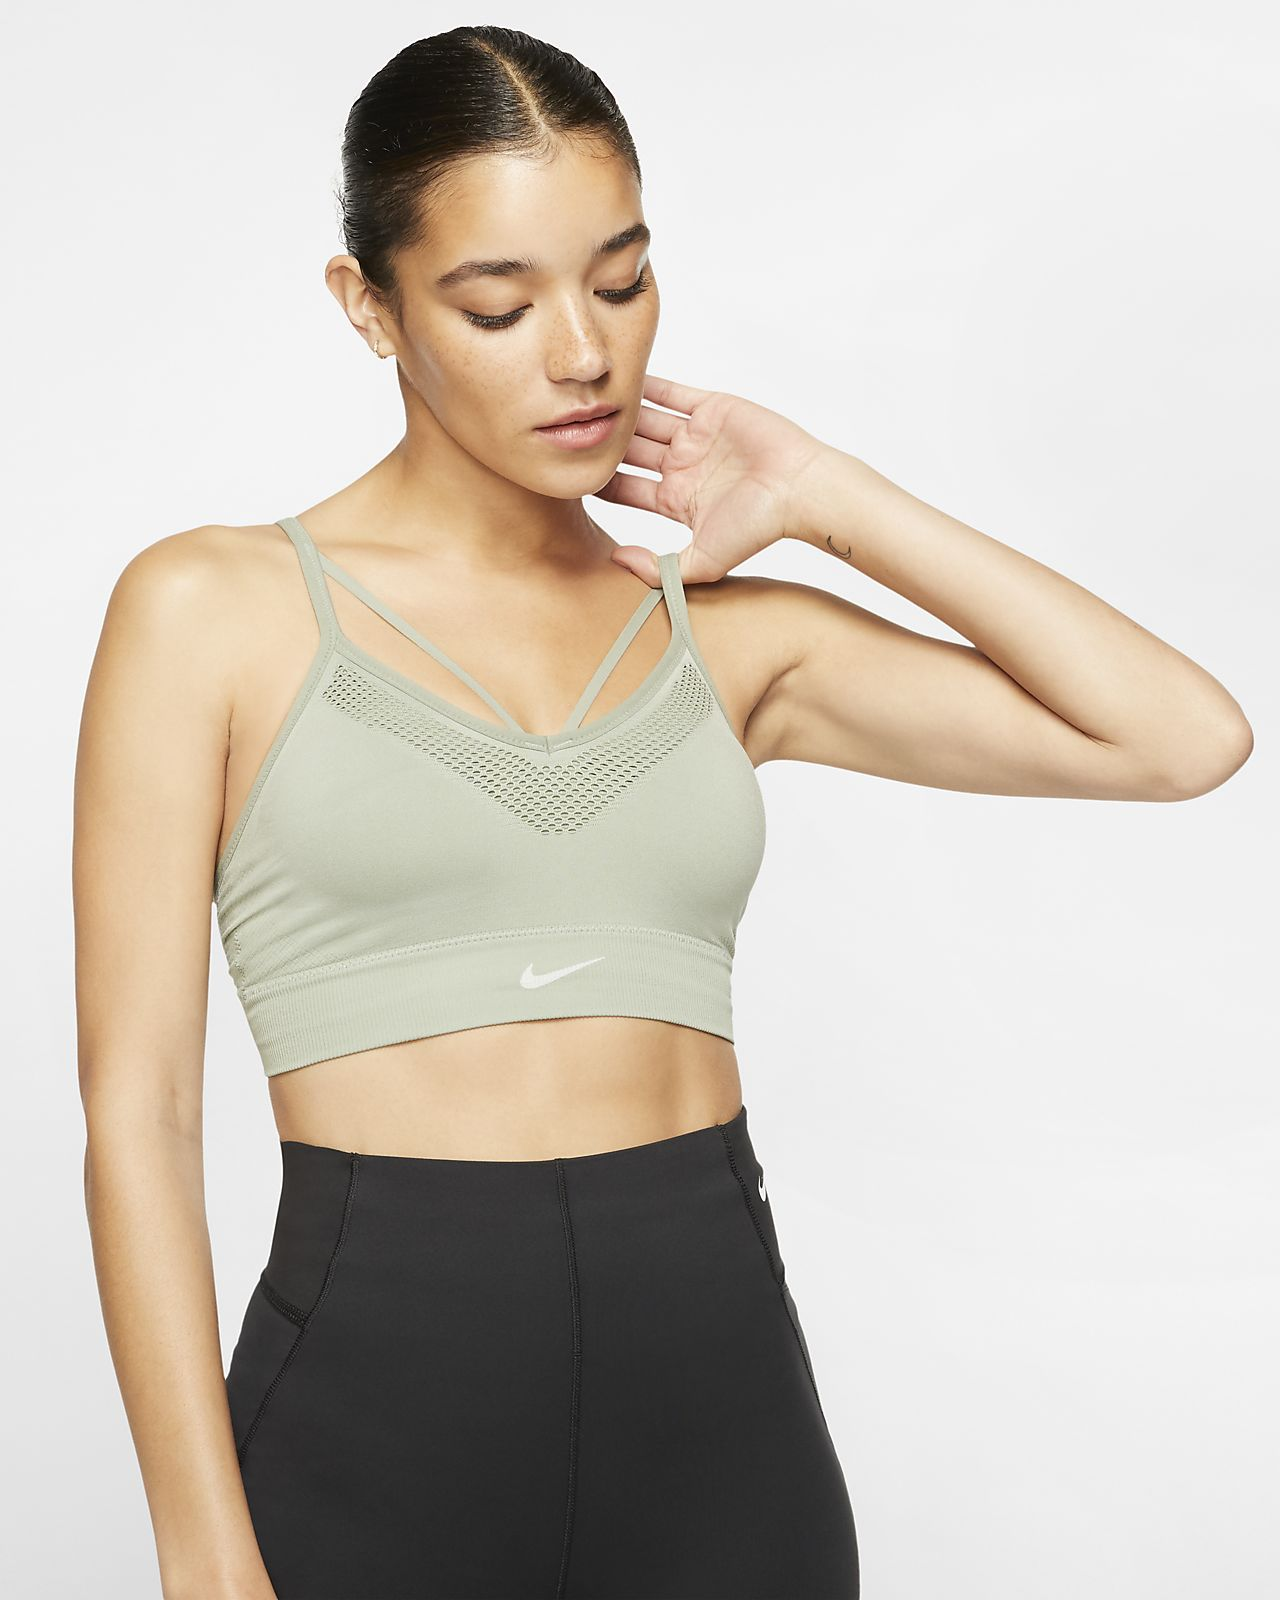 Nike Seamless Women's Light-Support Yoga Sports Bra